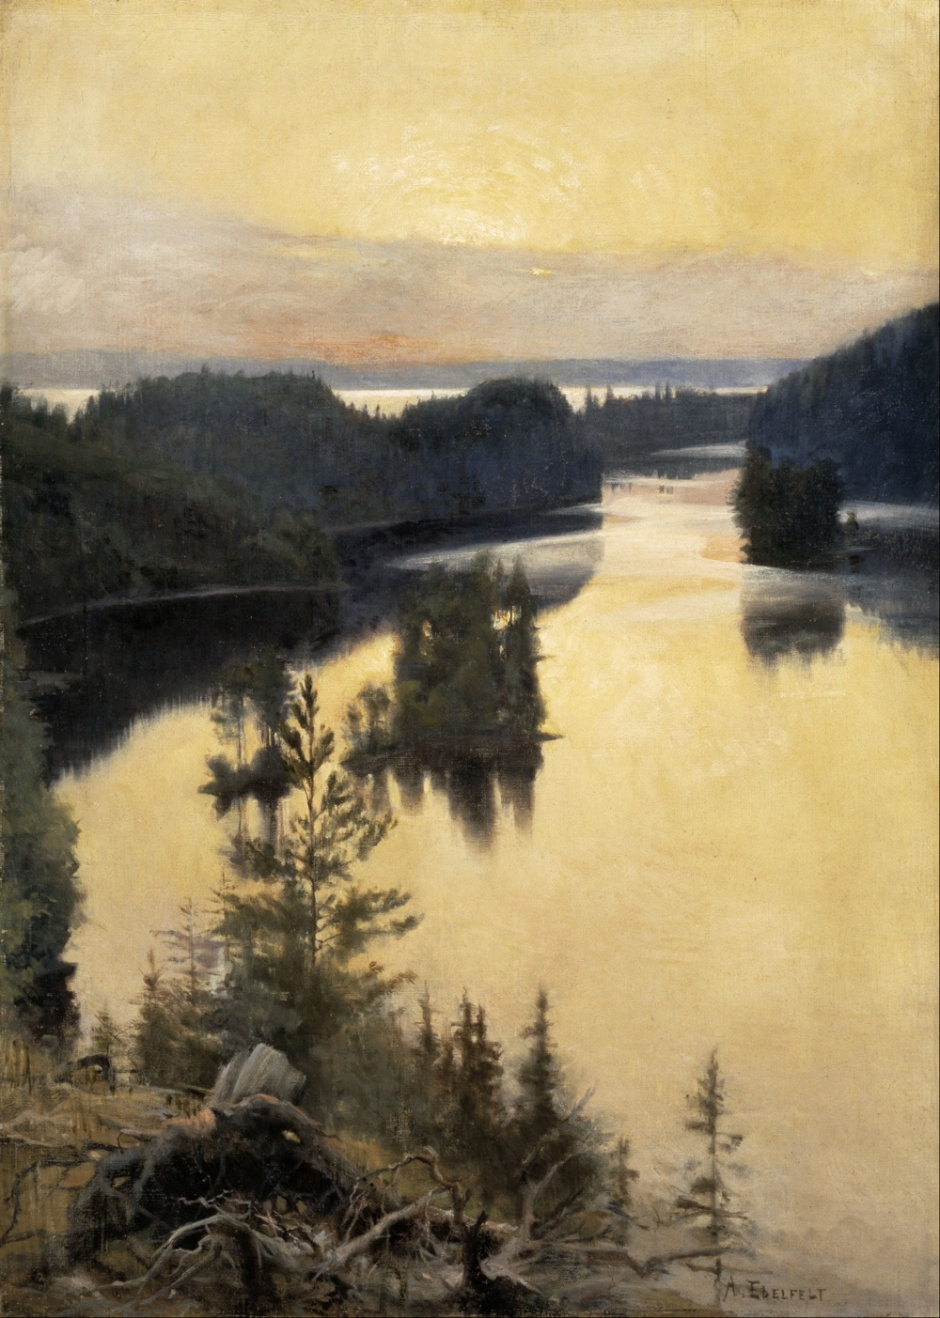 Albert Edelfelt, Kaukola Ridge at Sunset (1889-90), oil on canvas, 116.5 x 83 cm, Ateneum, Helsinki. Wikimedia Commons.